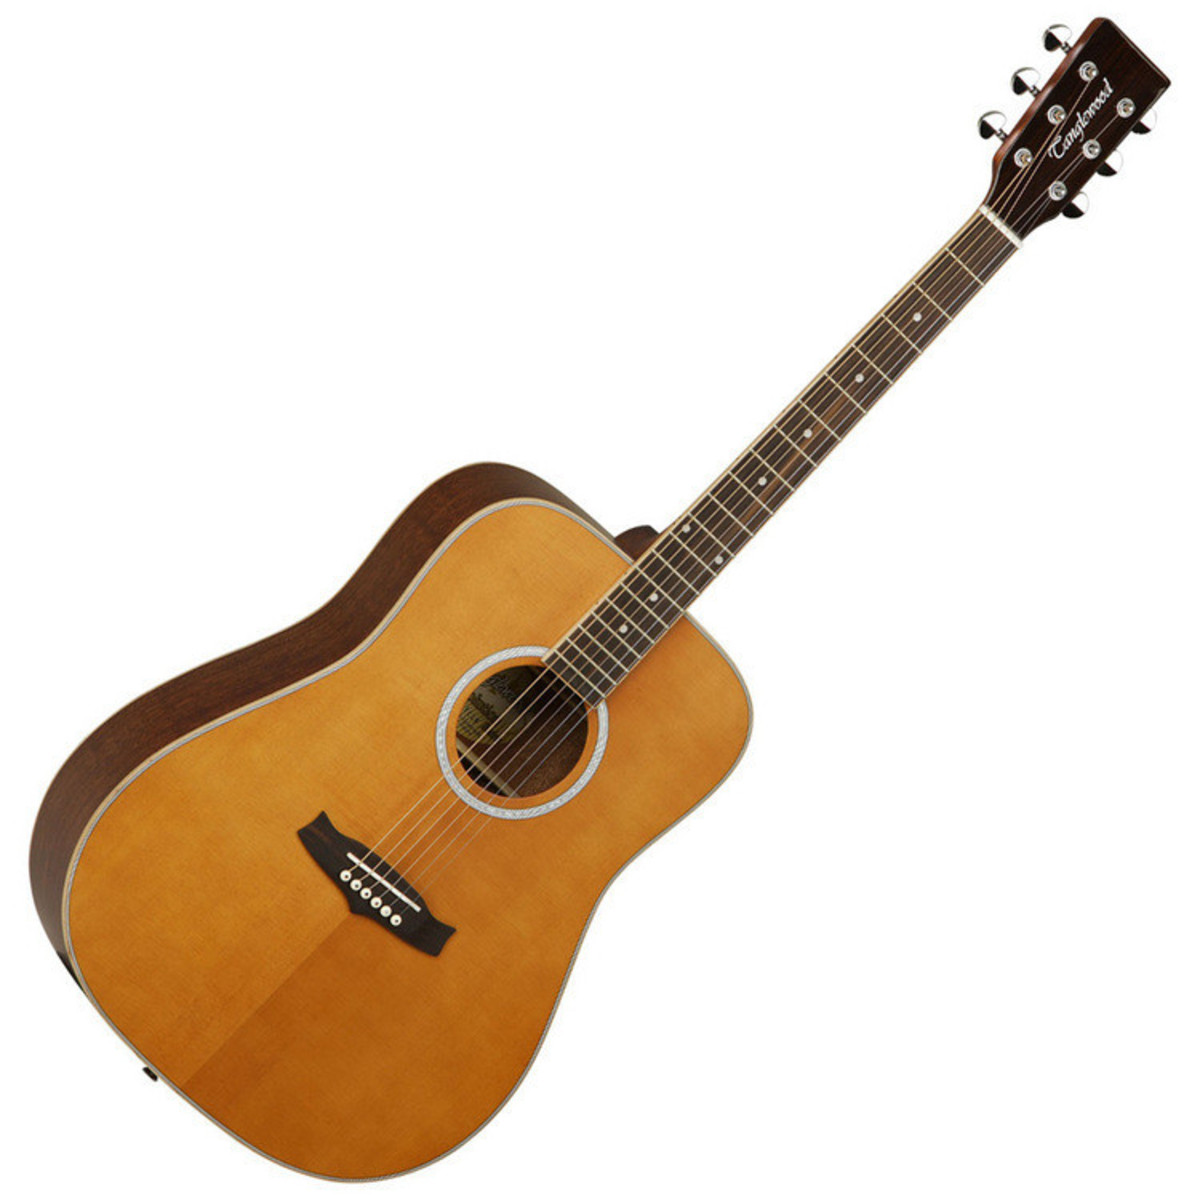 Puis tanglewood evolution tw28 guitare acoustique tuner for The tanglewood